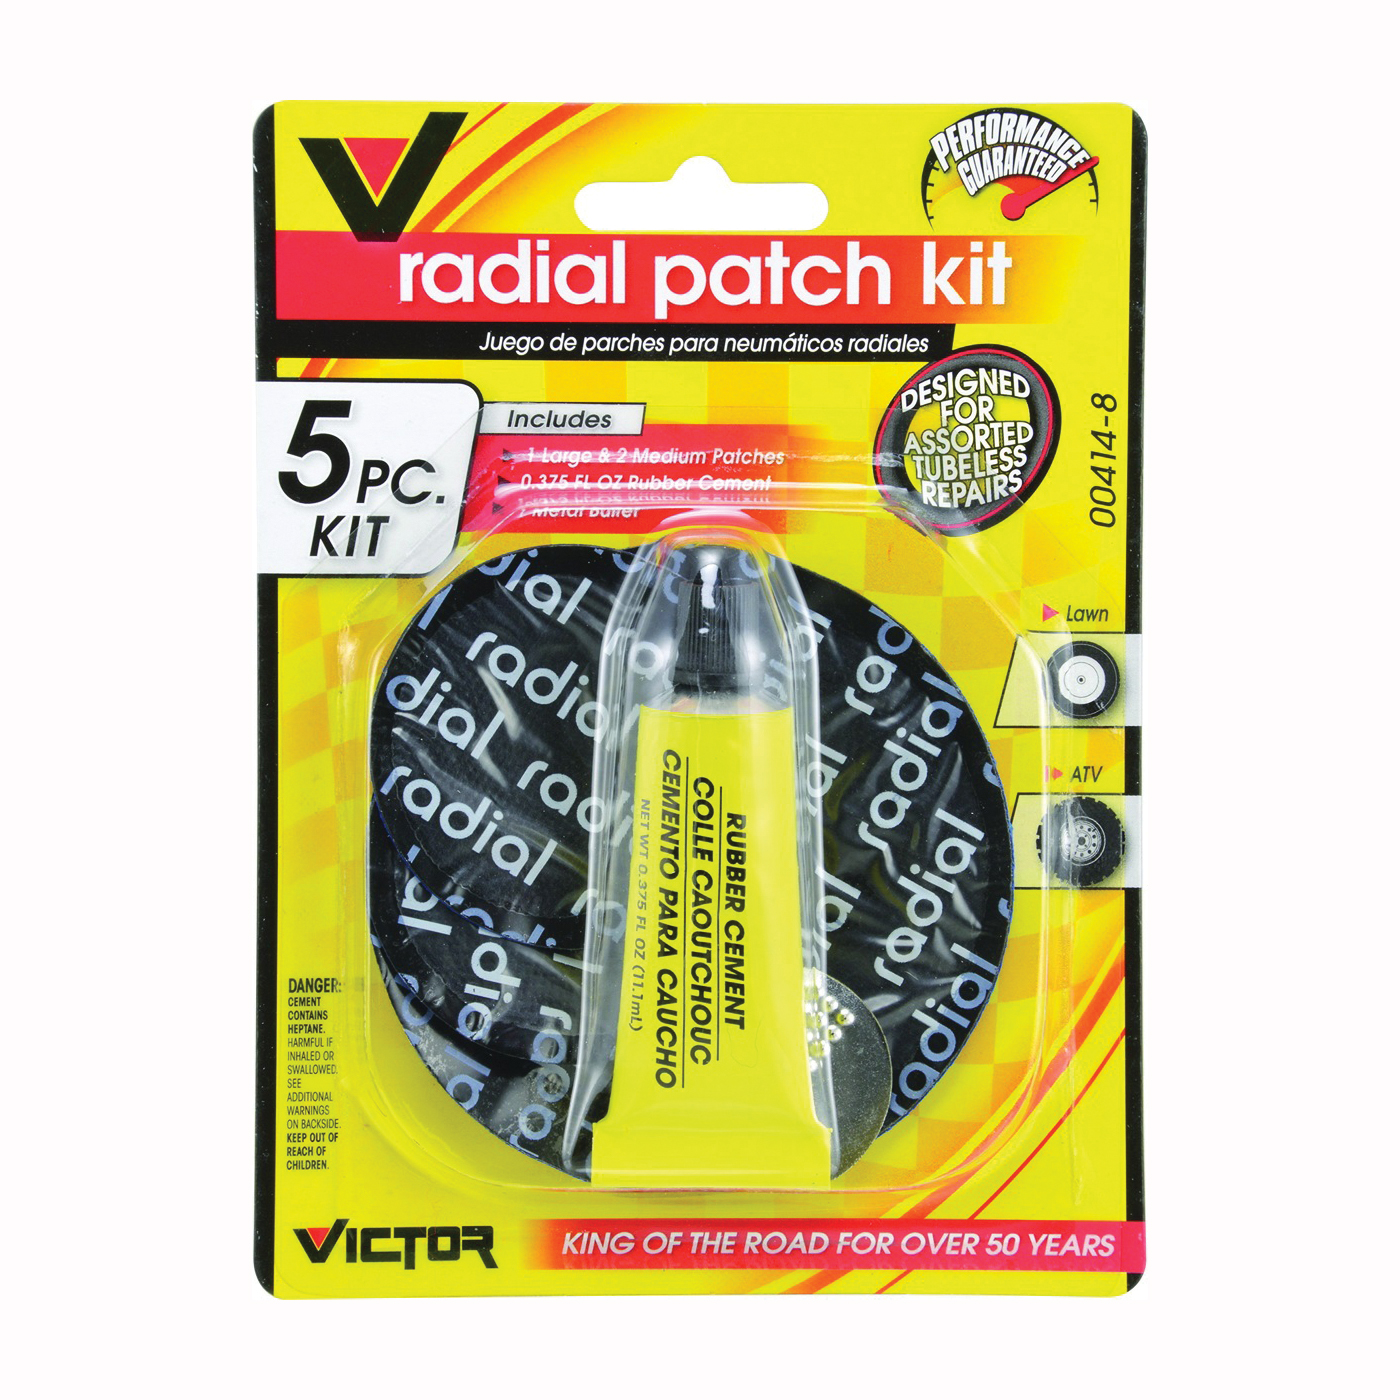 Picture of GENUINE VICTOR 22-5-00414-8 Tire Patch Kit, Metal/Rubber